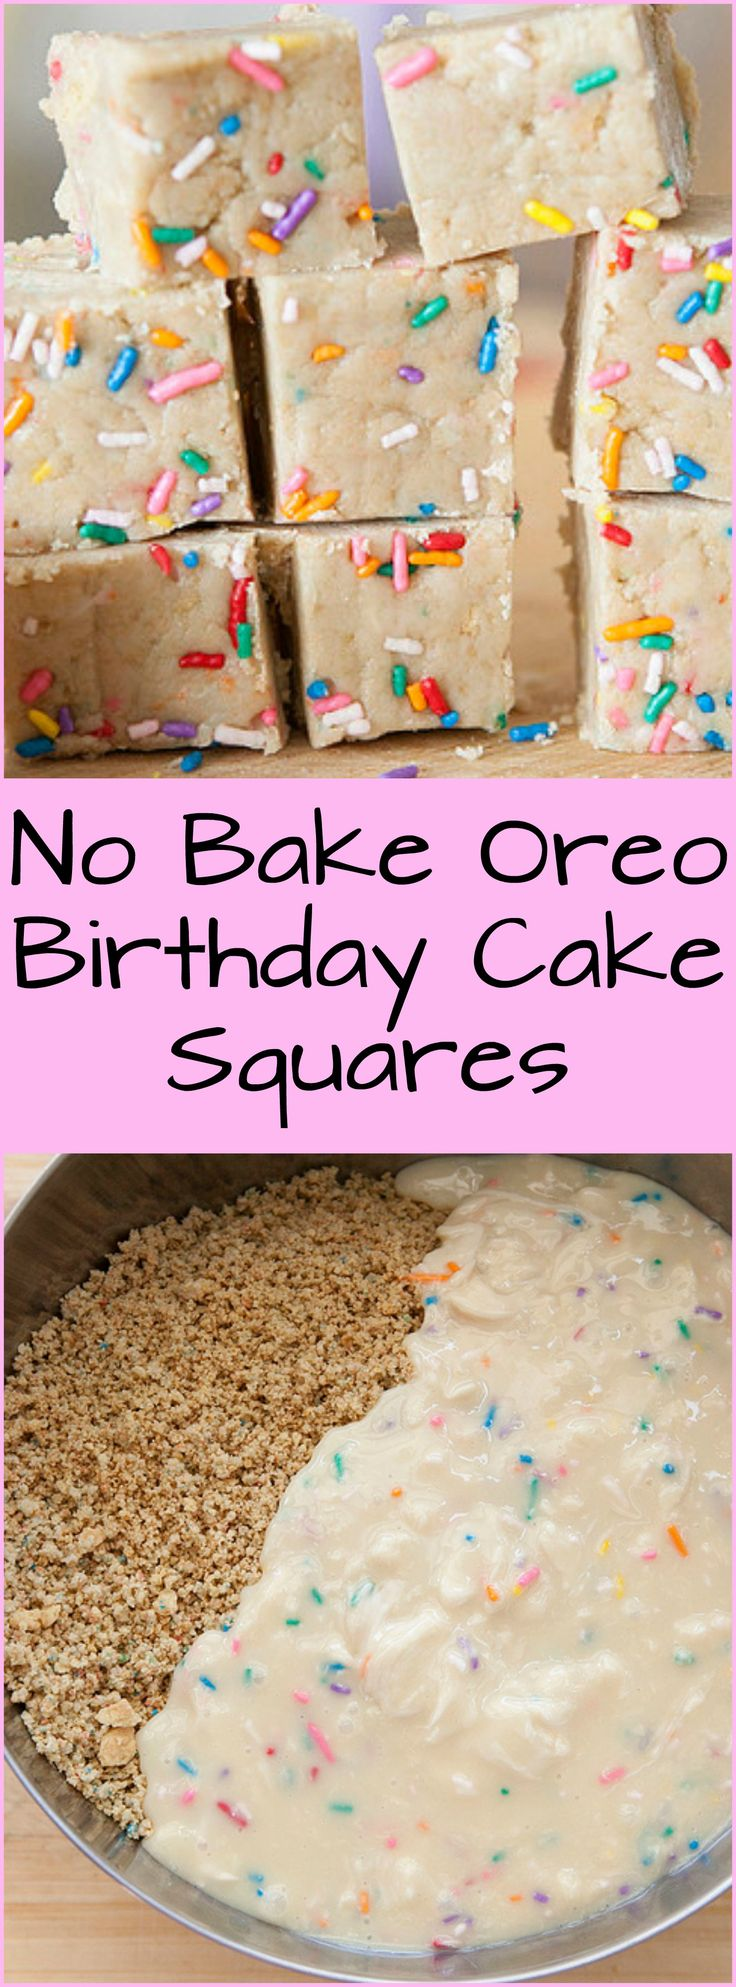 No Bake Oreo Birthday Cake Batter Squares recipe that only needs 4 ingredients. They are perfect for when it's too hot to bake!